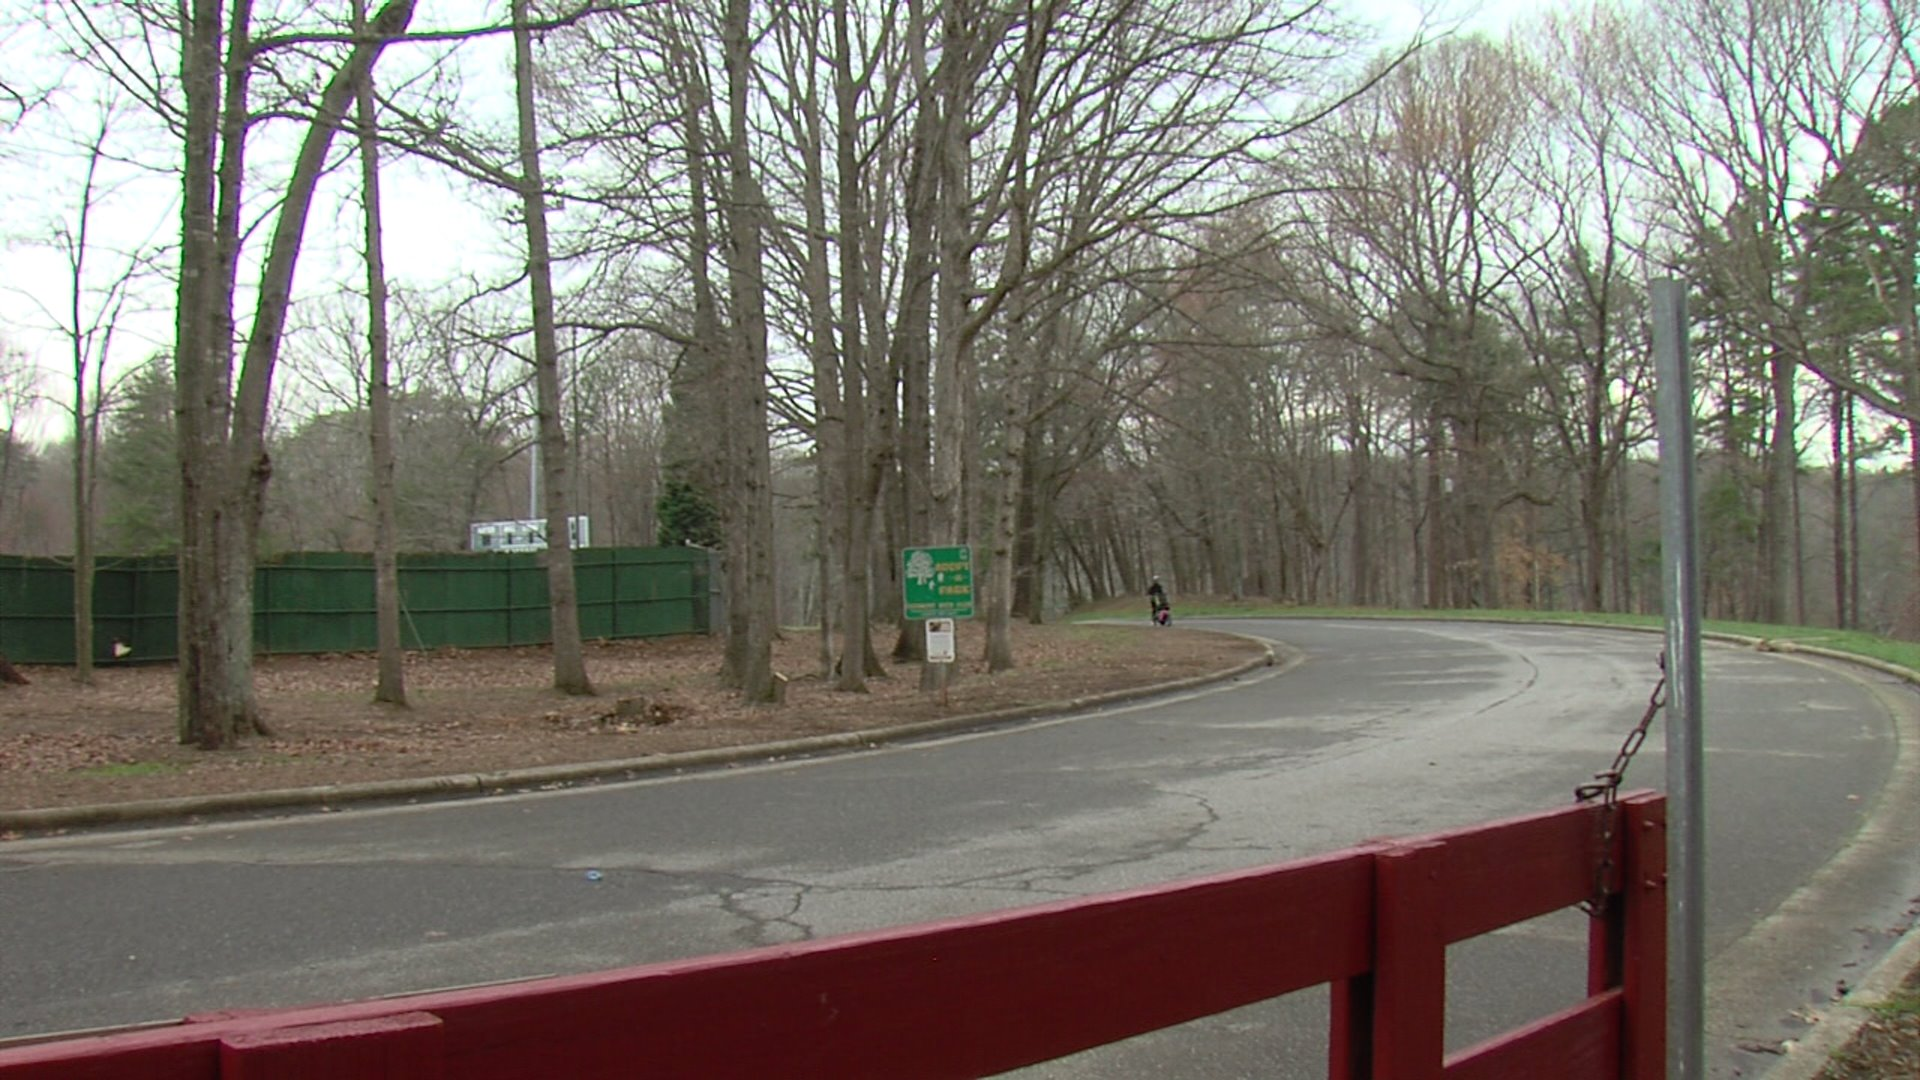 Greensboro parks and rec department increasing staff to better clean common areas